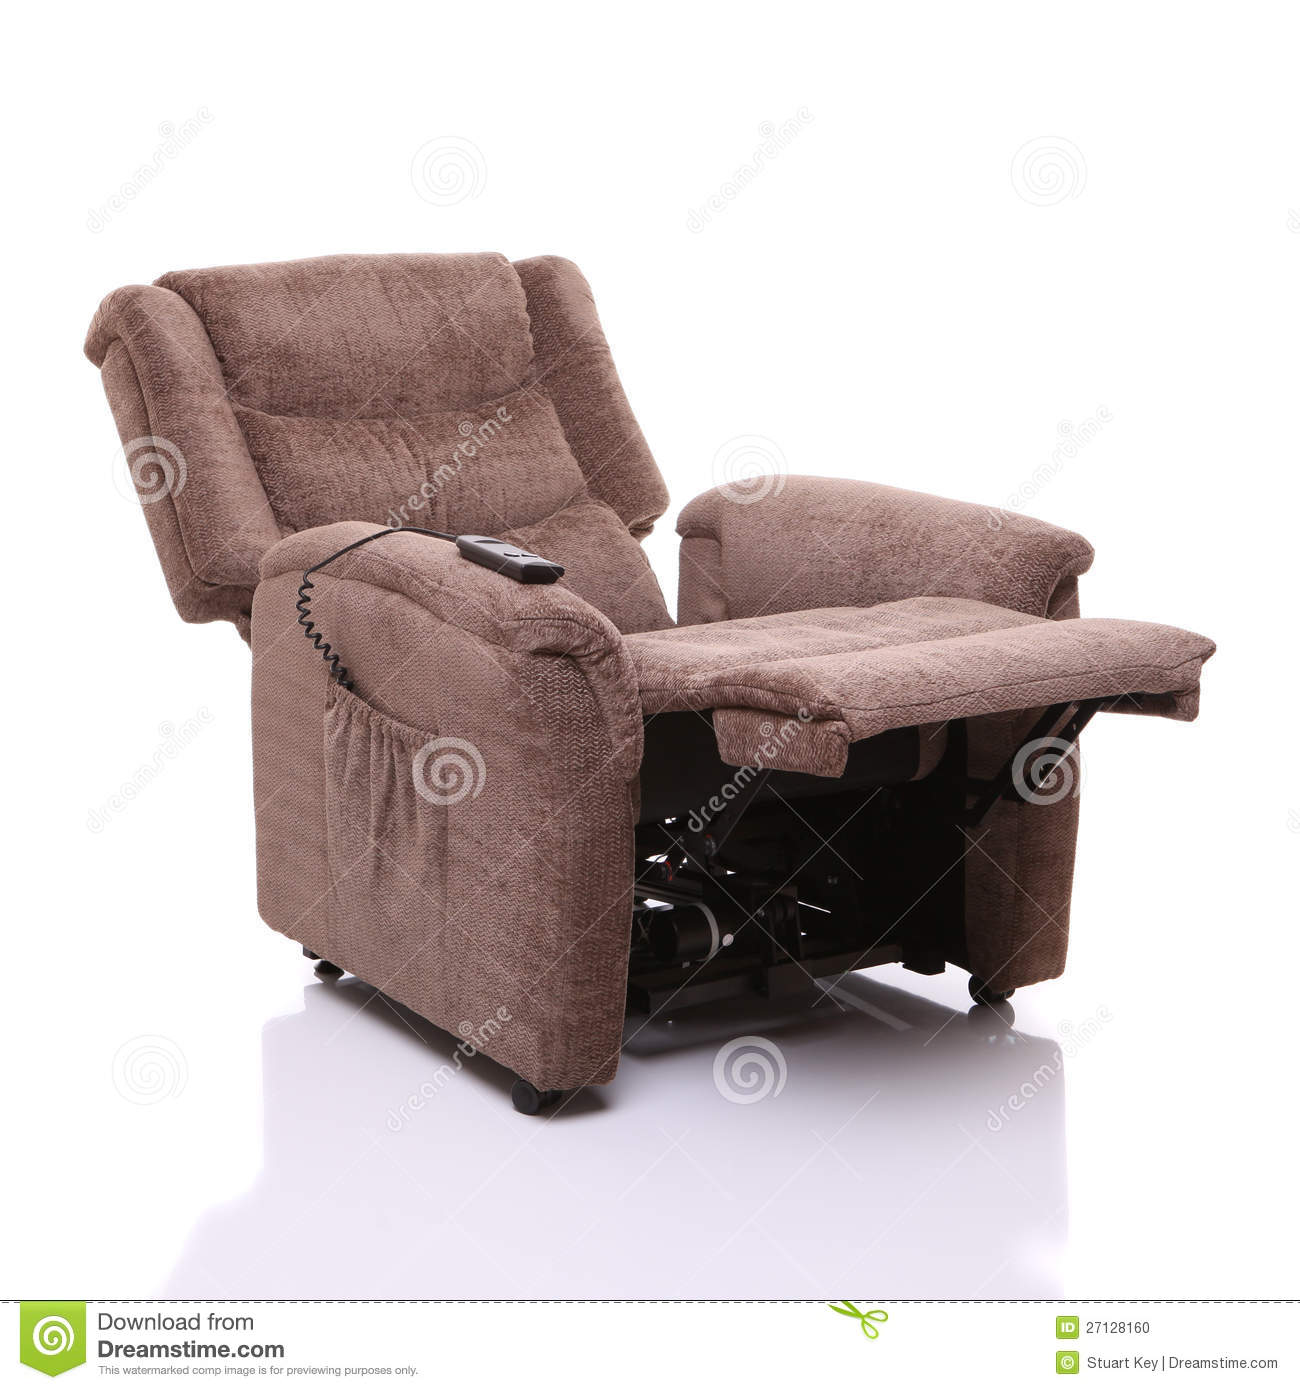 Strange Rise And Recline Chair Fully Reclined Stock Photo Image Creativecarmelina Interior Chair Design Creativecarmelinacom